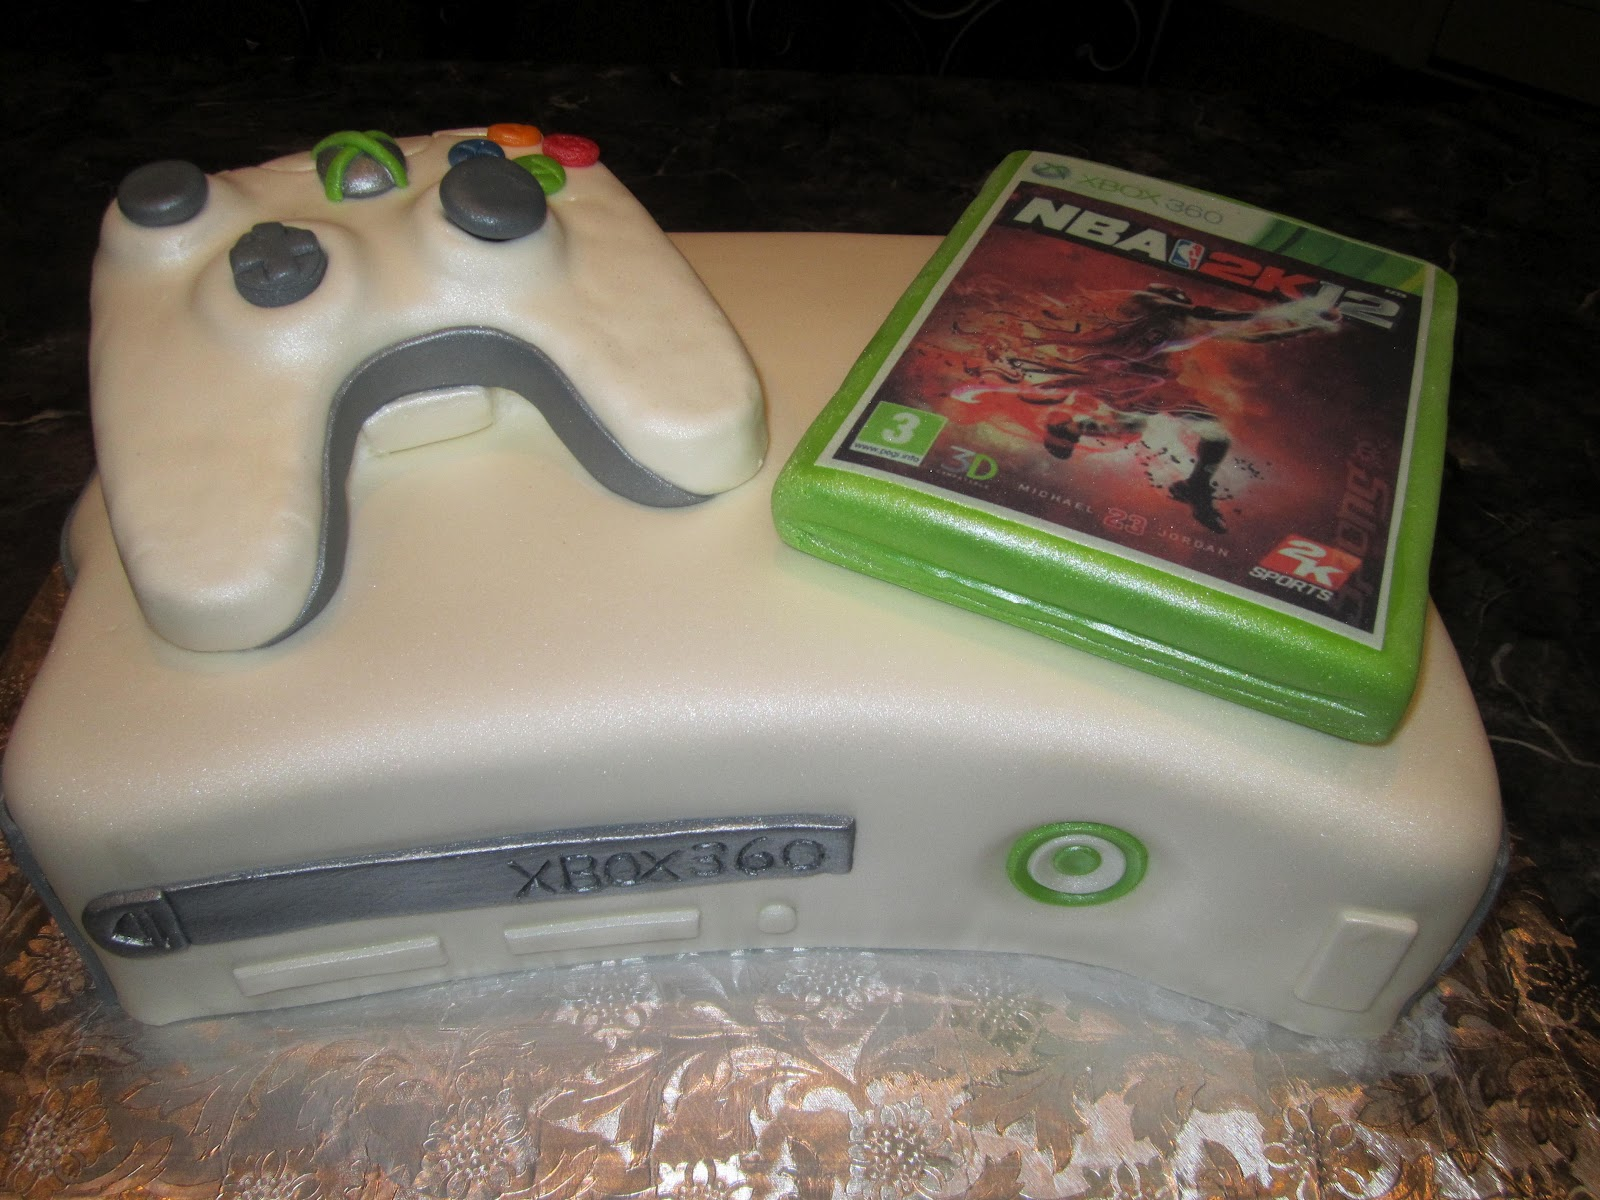 MyMoniCakes Xbox 360 Cake with Controller and Game